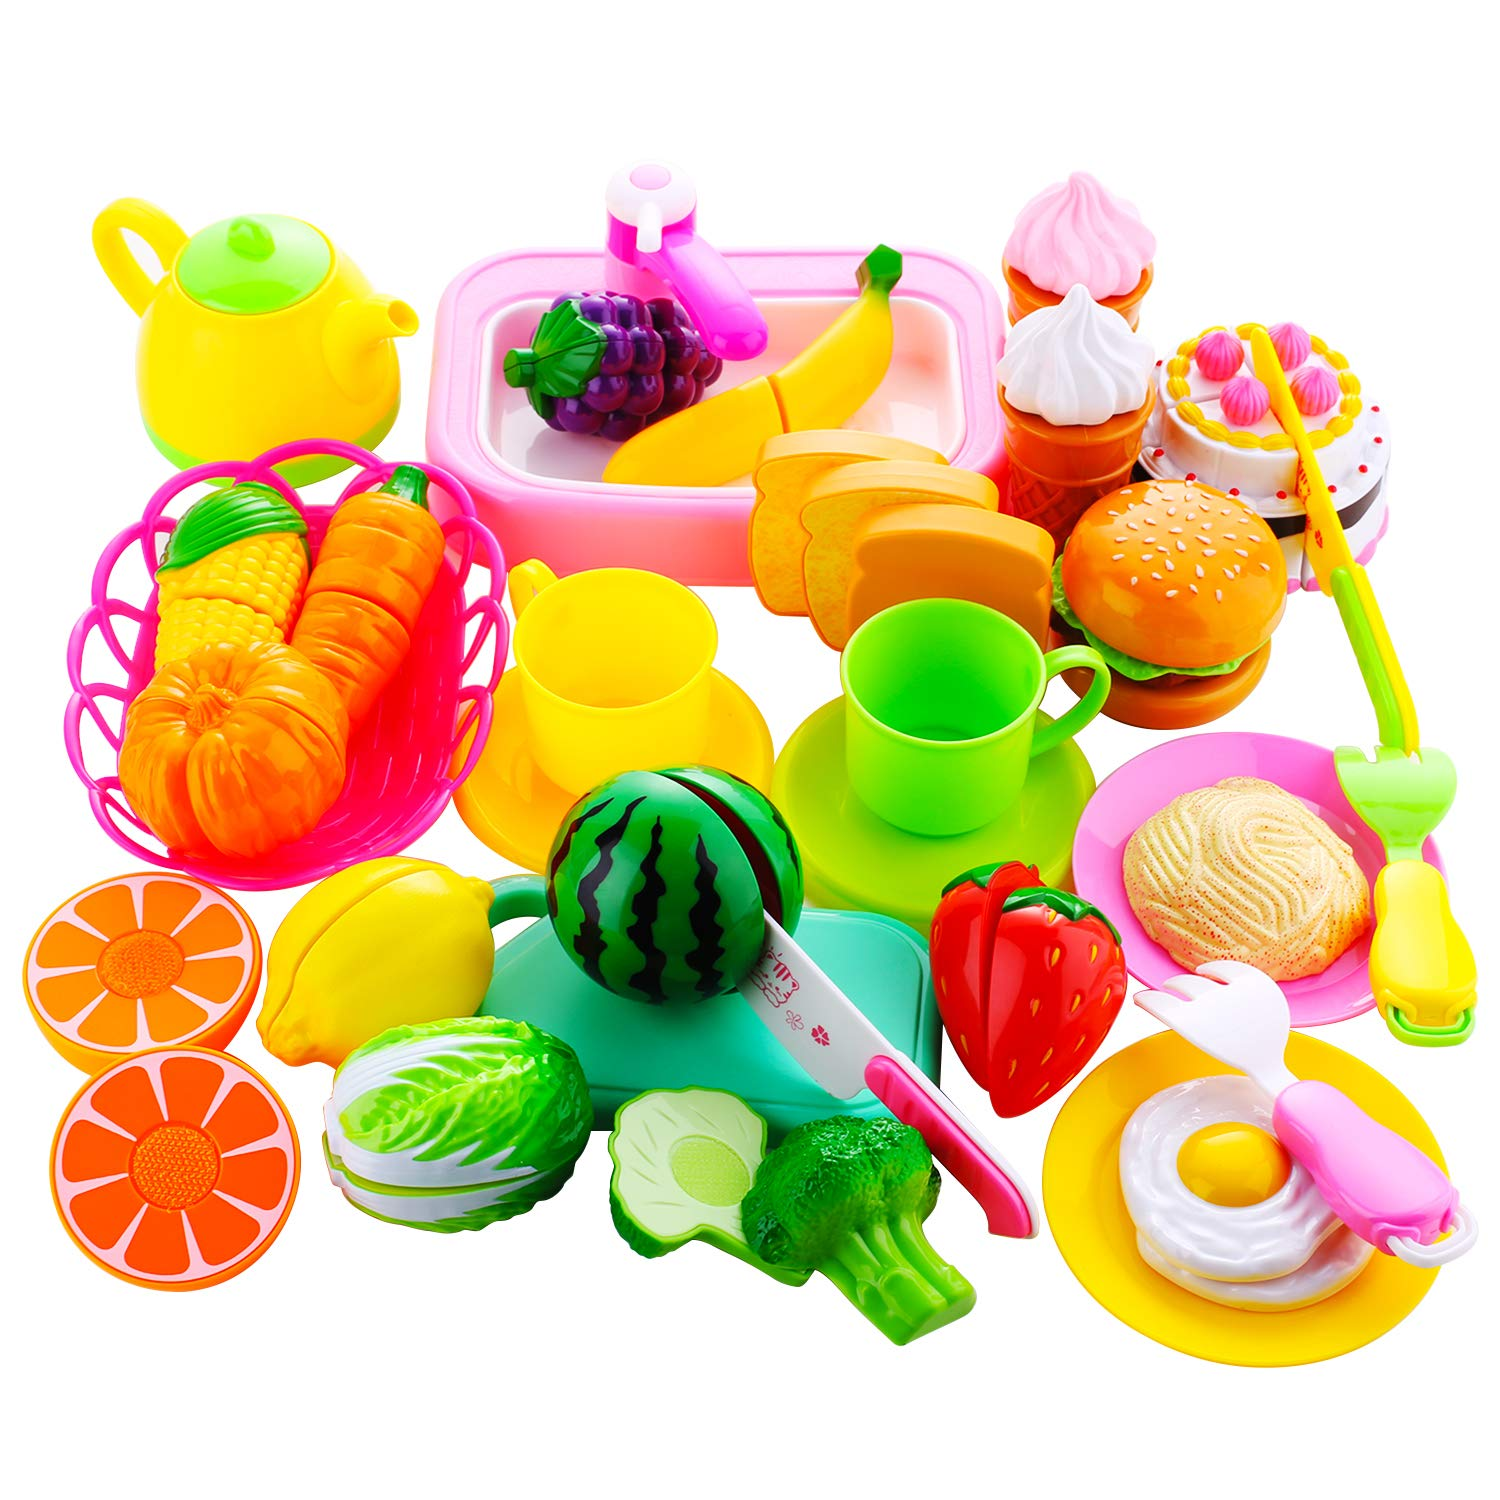 Biulotter 57 Pcs Play Food Set, Durable Pretend Food Playset Kitchen Cooking Set Plastic Foods Vegetable Toy Set for Kids Toddlers Play Kitchen Playset Accessories Toy for Educational Learning